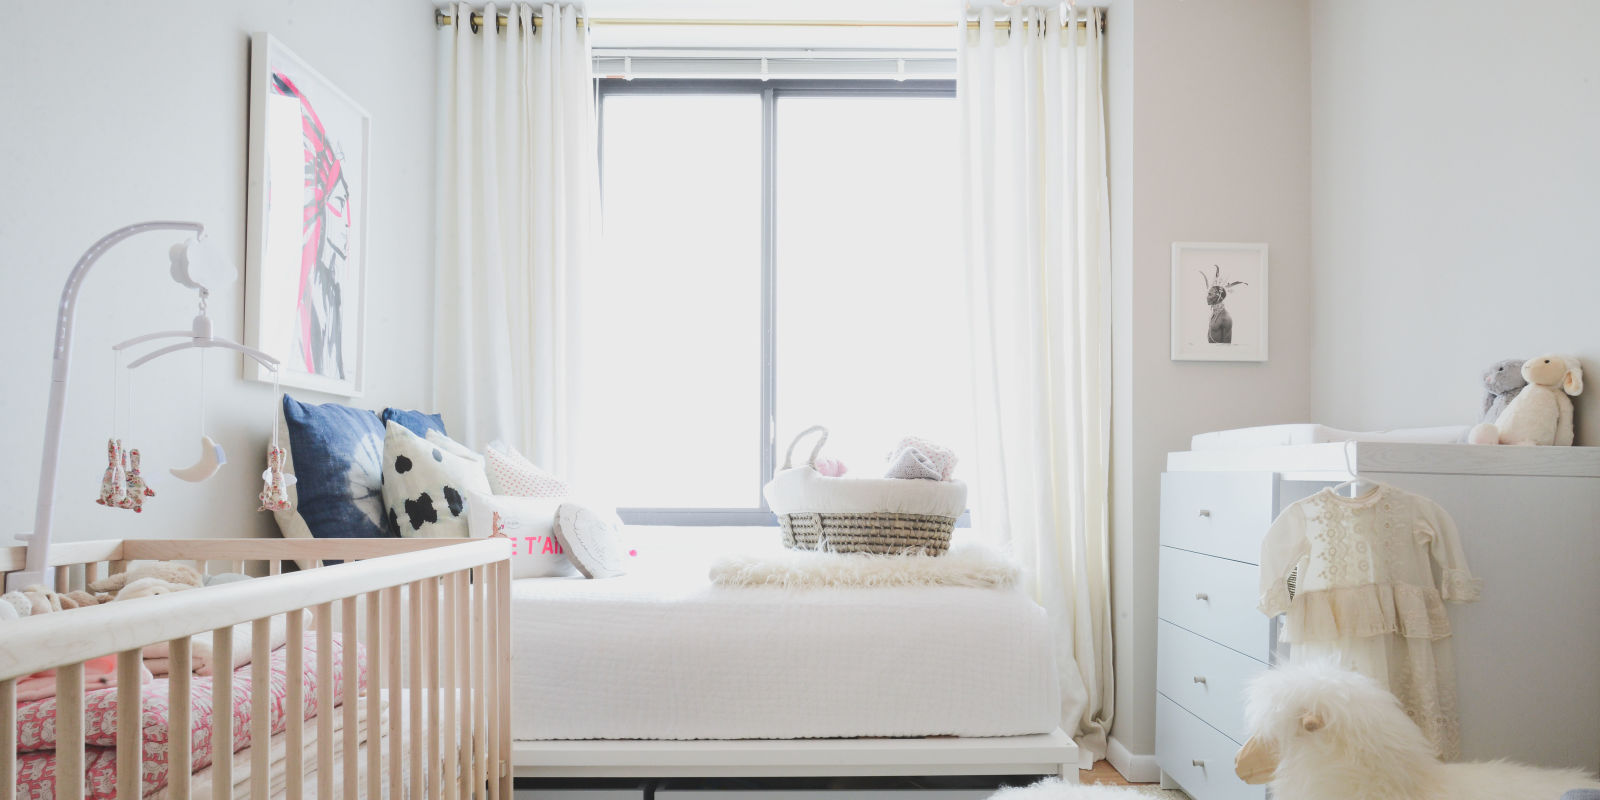 baby room ideas 8 best baby room ideas nursery decorating furniture amp decor 31063